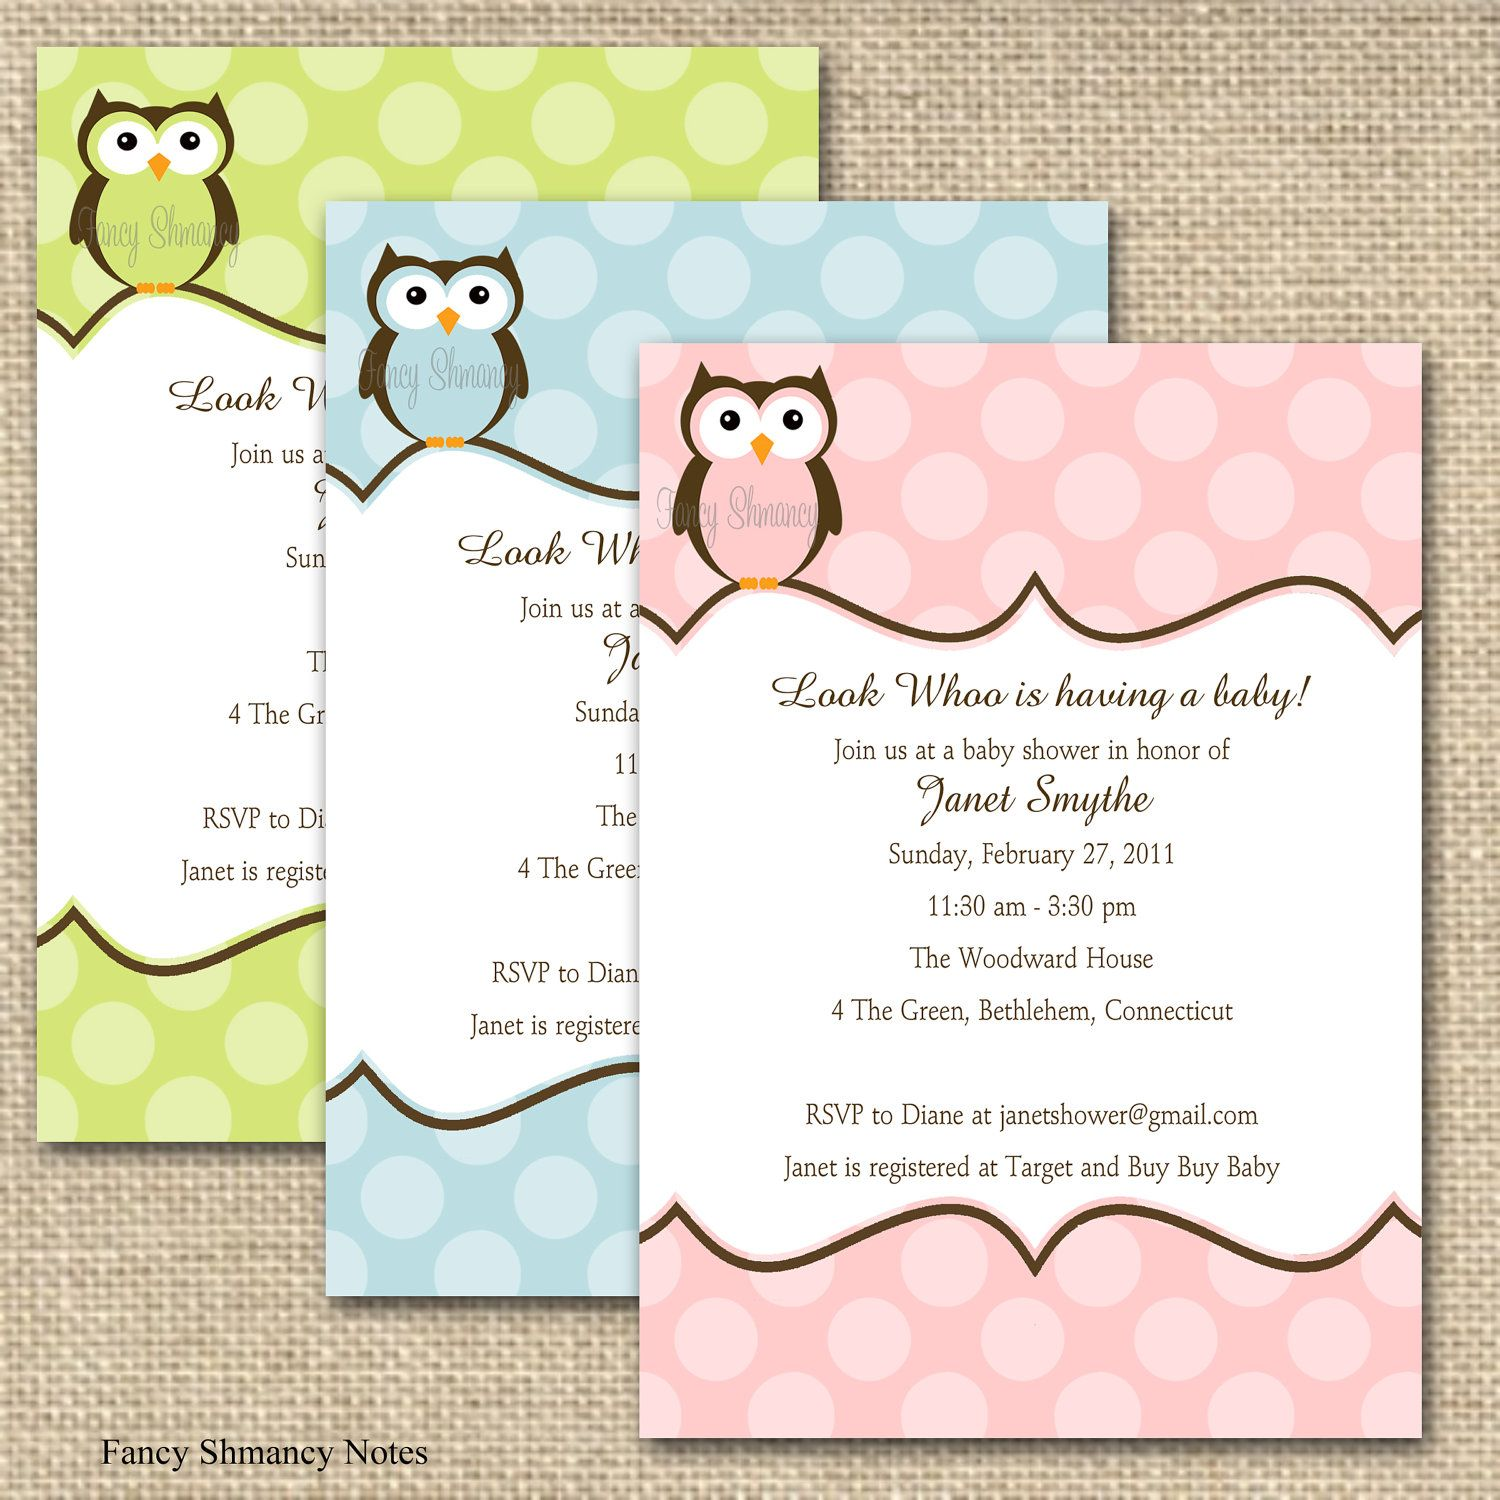 17 Best images about Awesome Baby Shower Invitation Ideas on ...